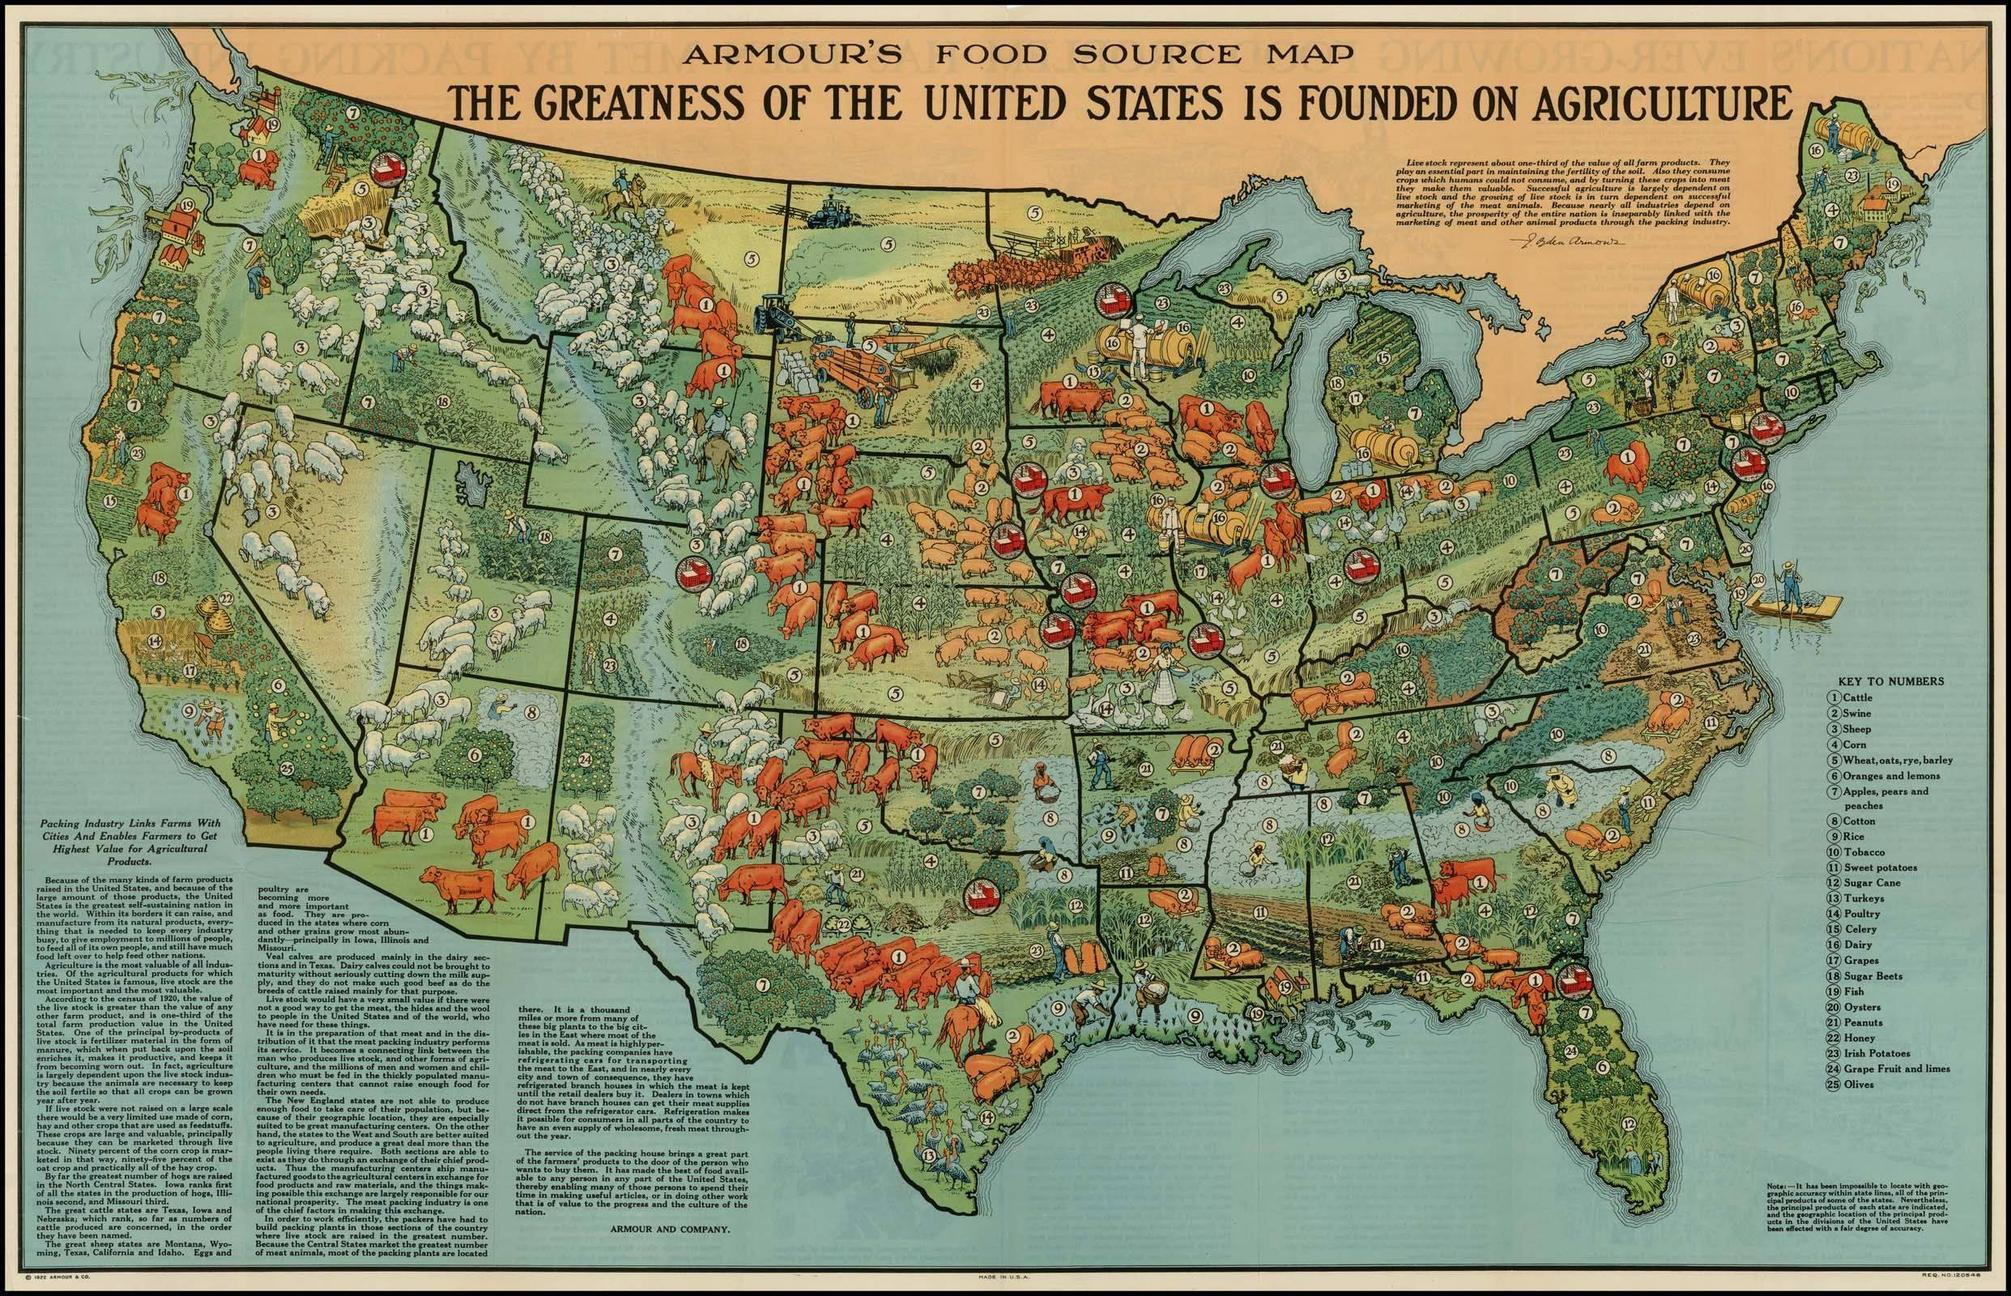 40 maps that explain food in America  Voxcom